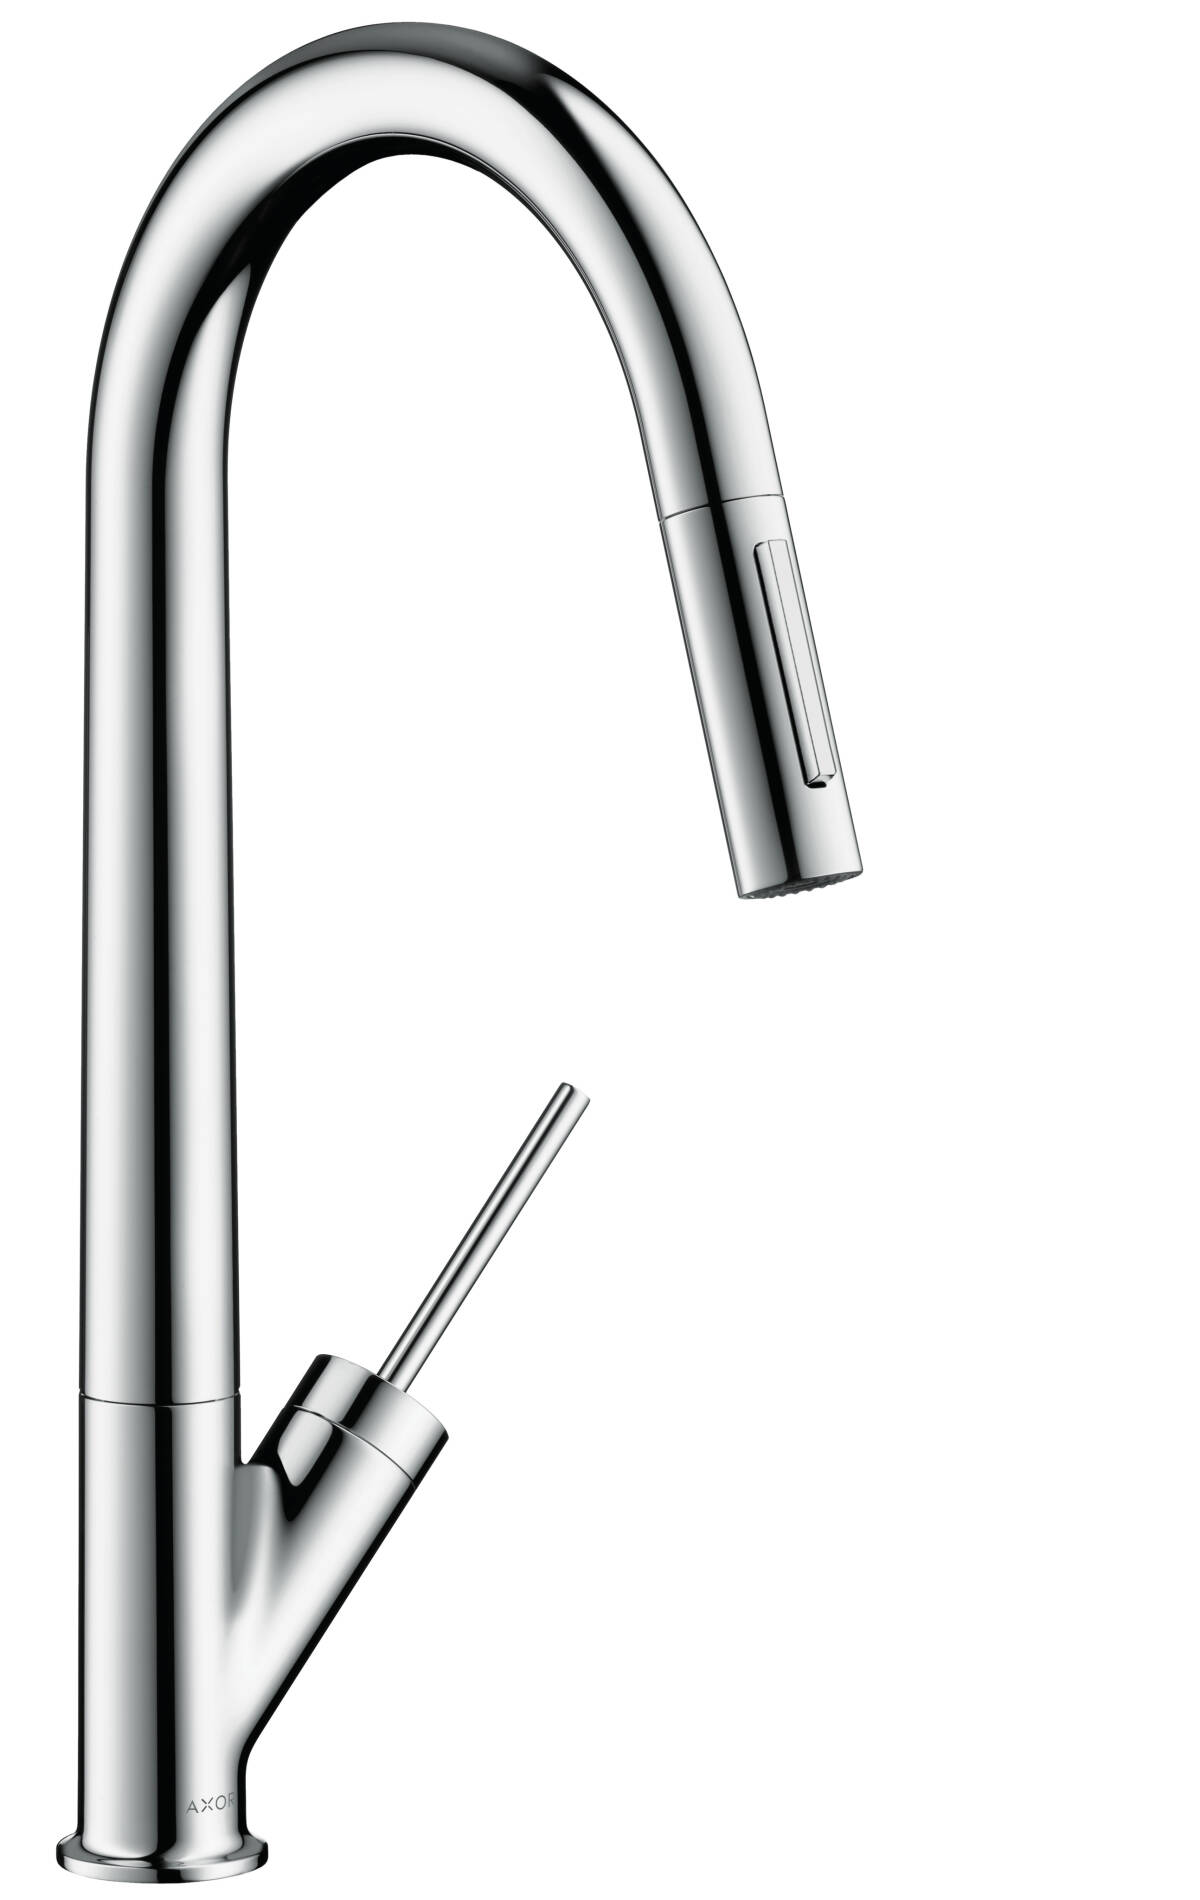 Single lever kitchen mixer with pull-out spray, Brushed Red Gold, 10821310